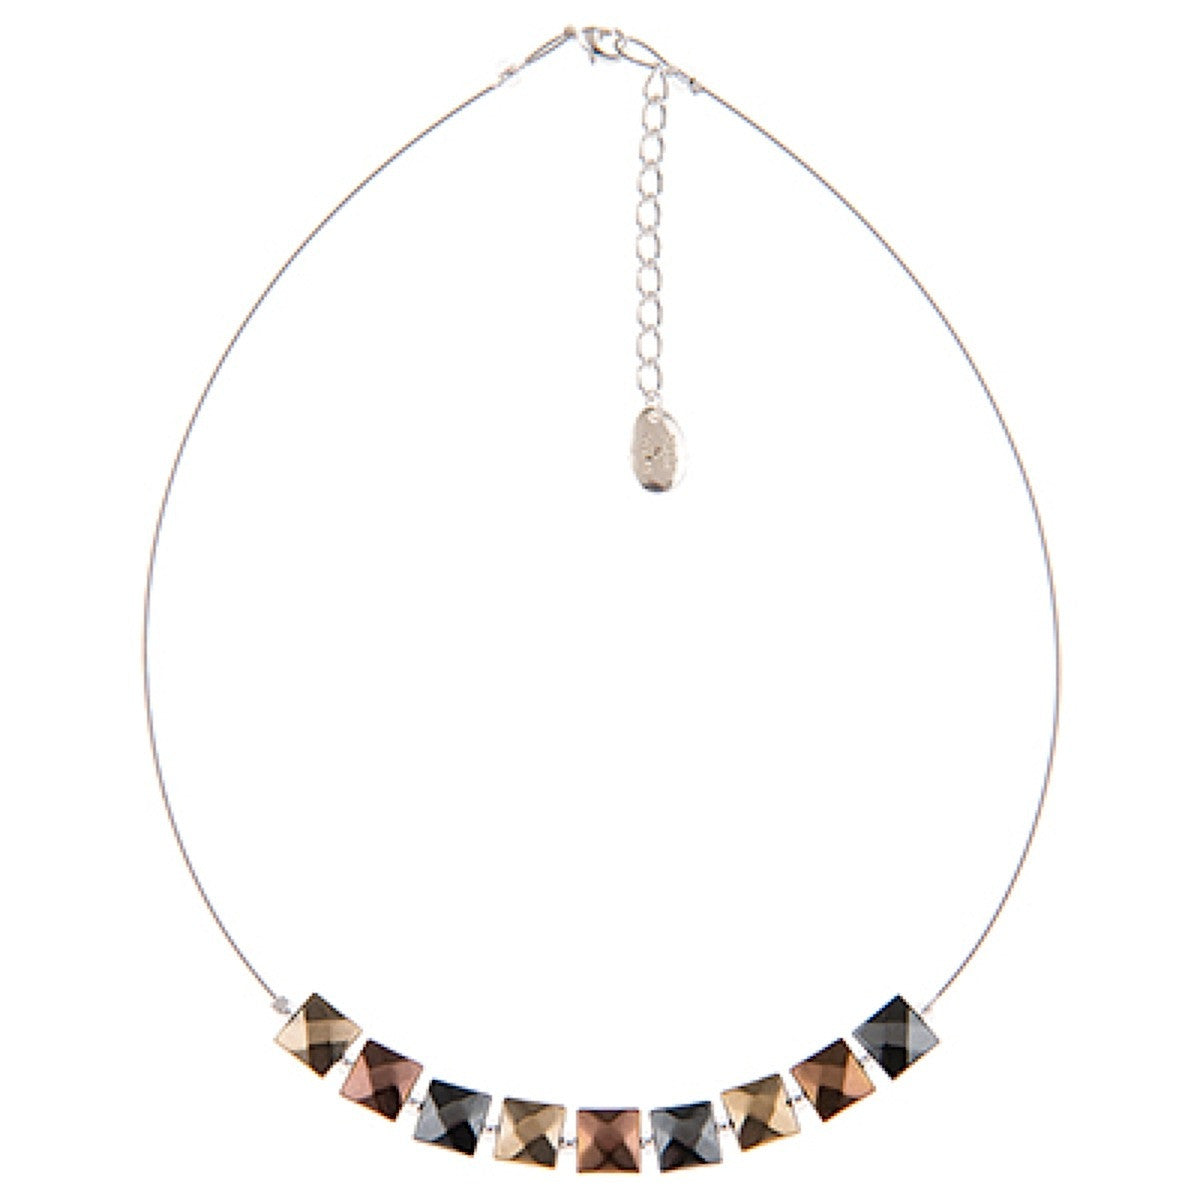 Metallic Boudica Necklace